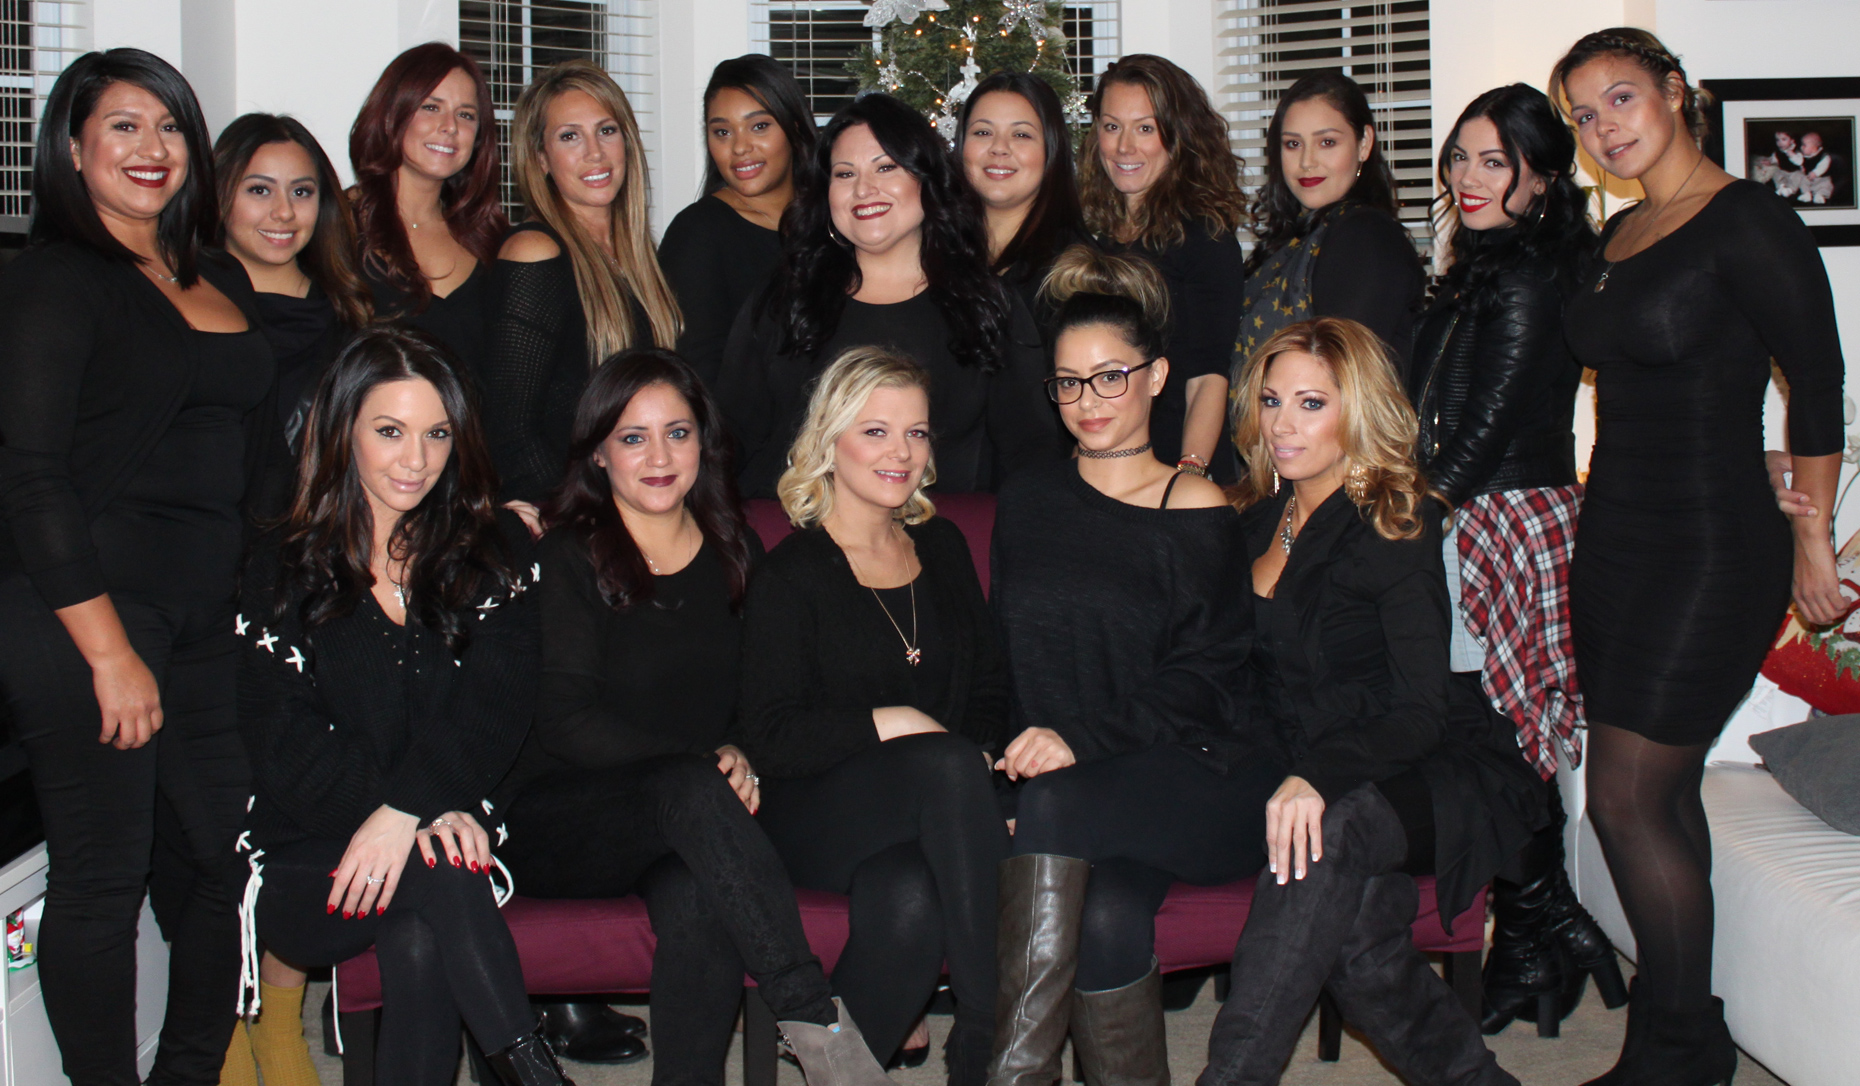 Victoria De Los Rios And Her Team of Award Winning Makeup and Hair Artists